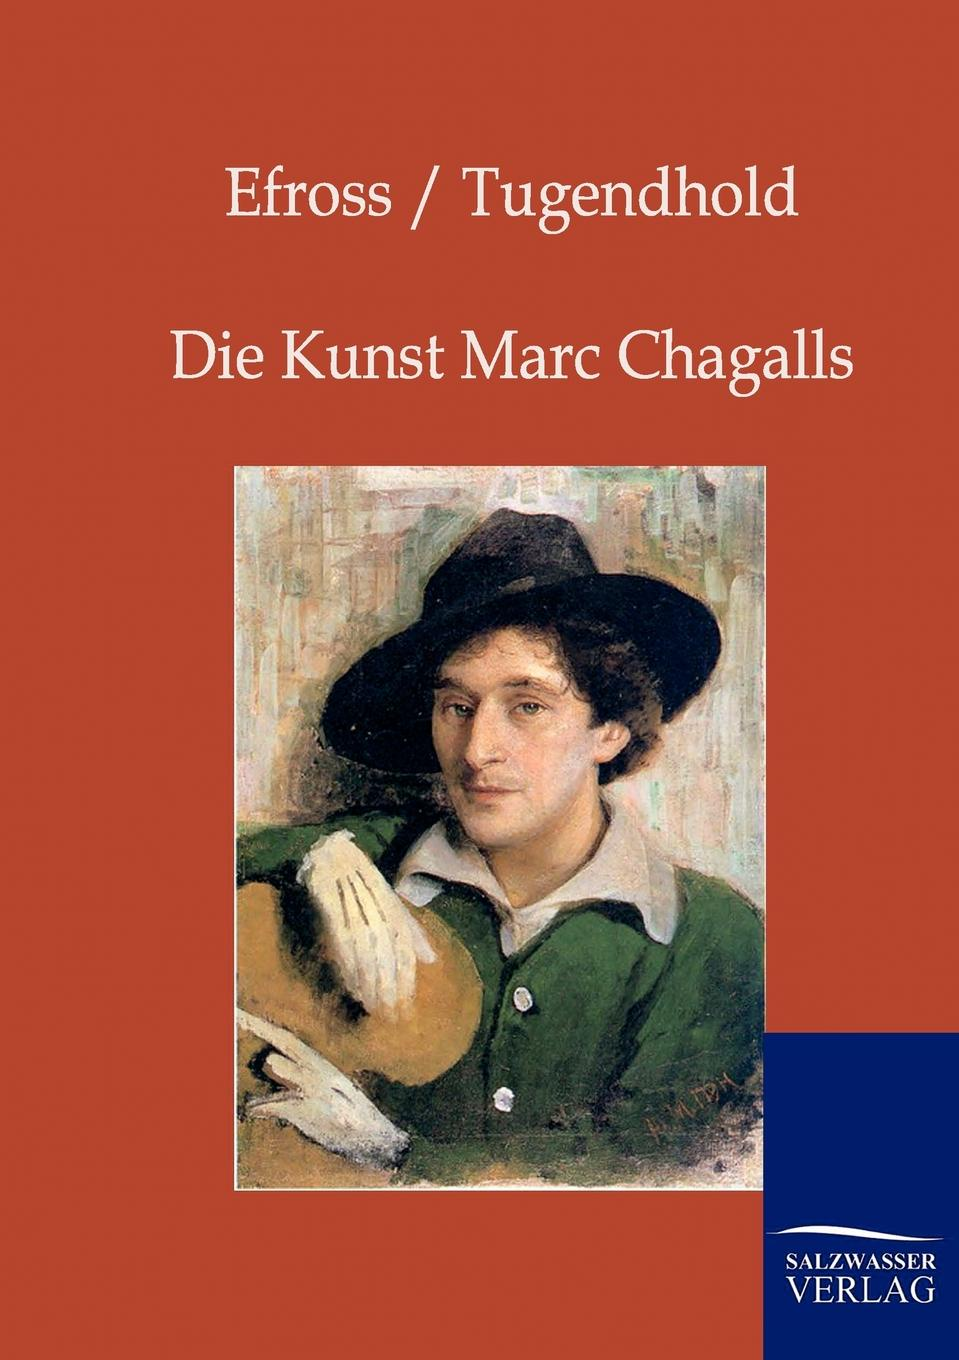 A. Efross, J. Tugendhold Die Kunst Marc Chagalls chagall